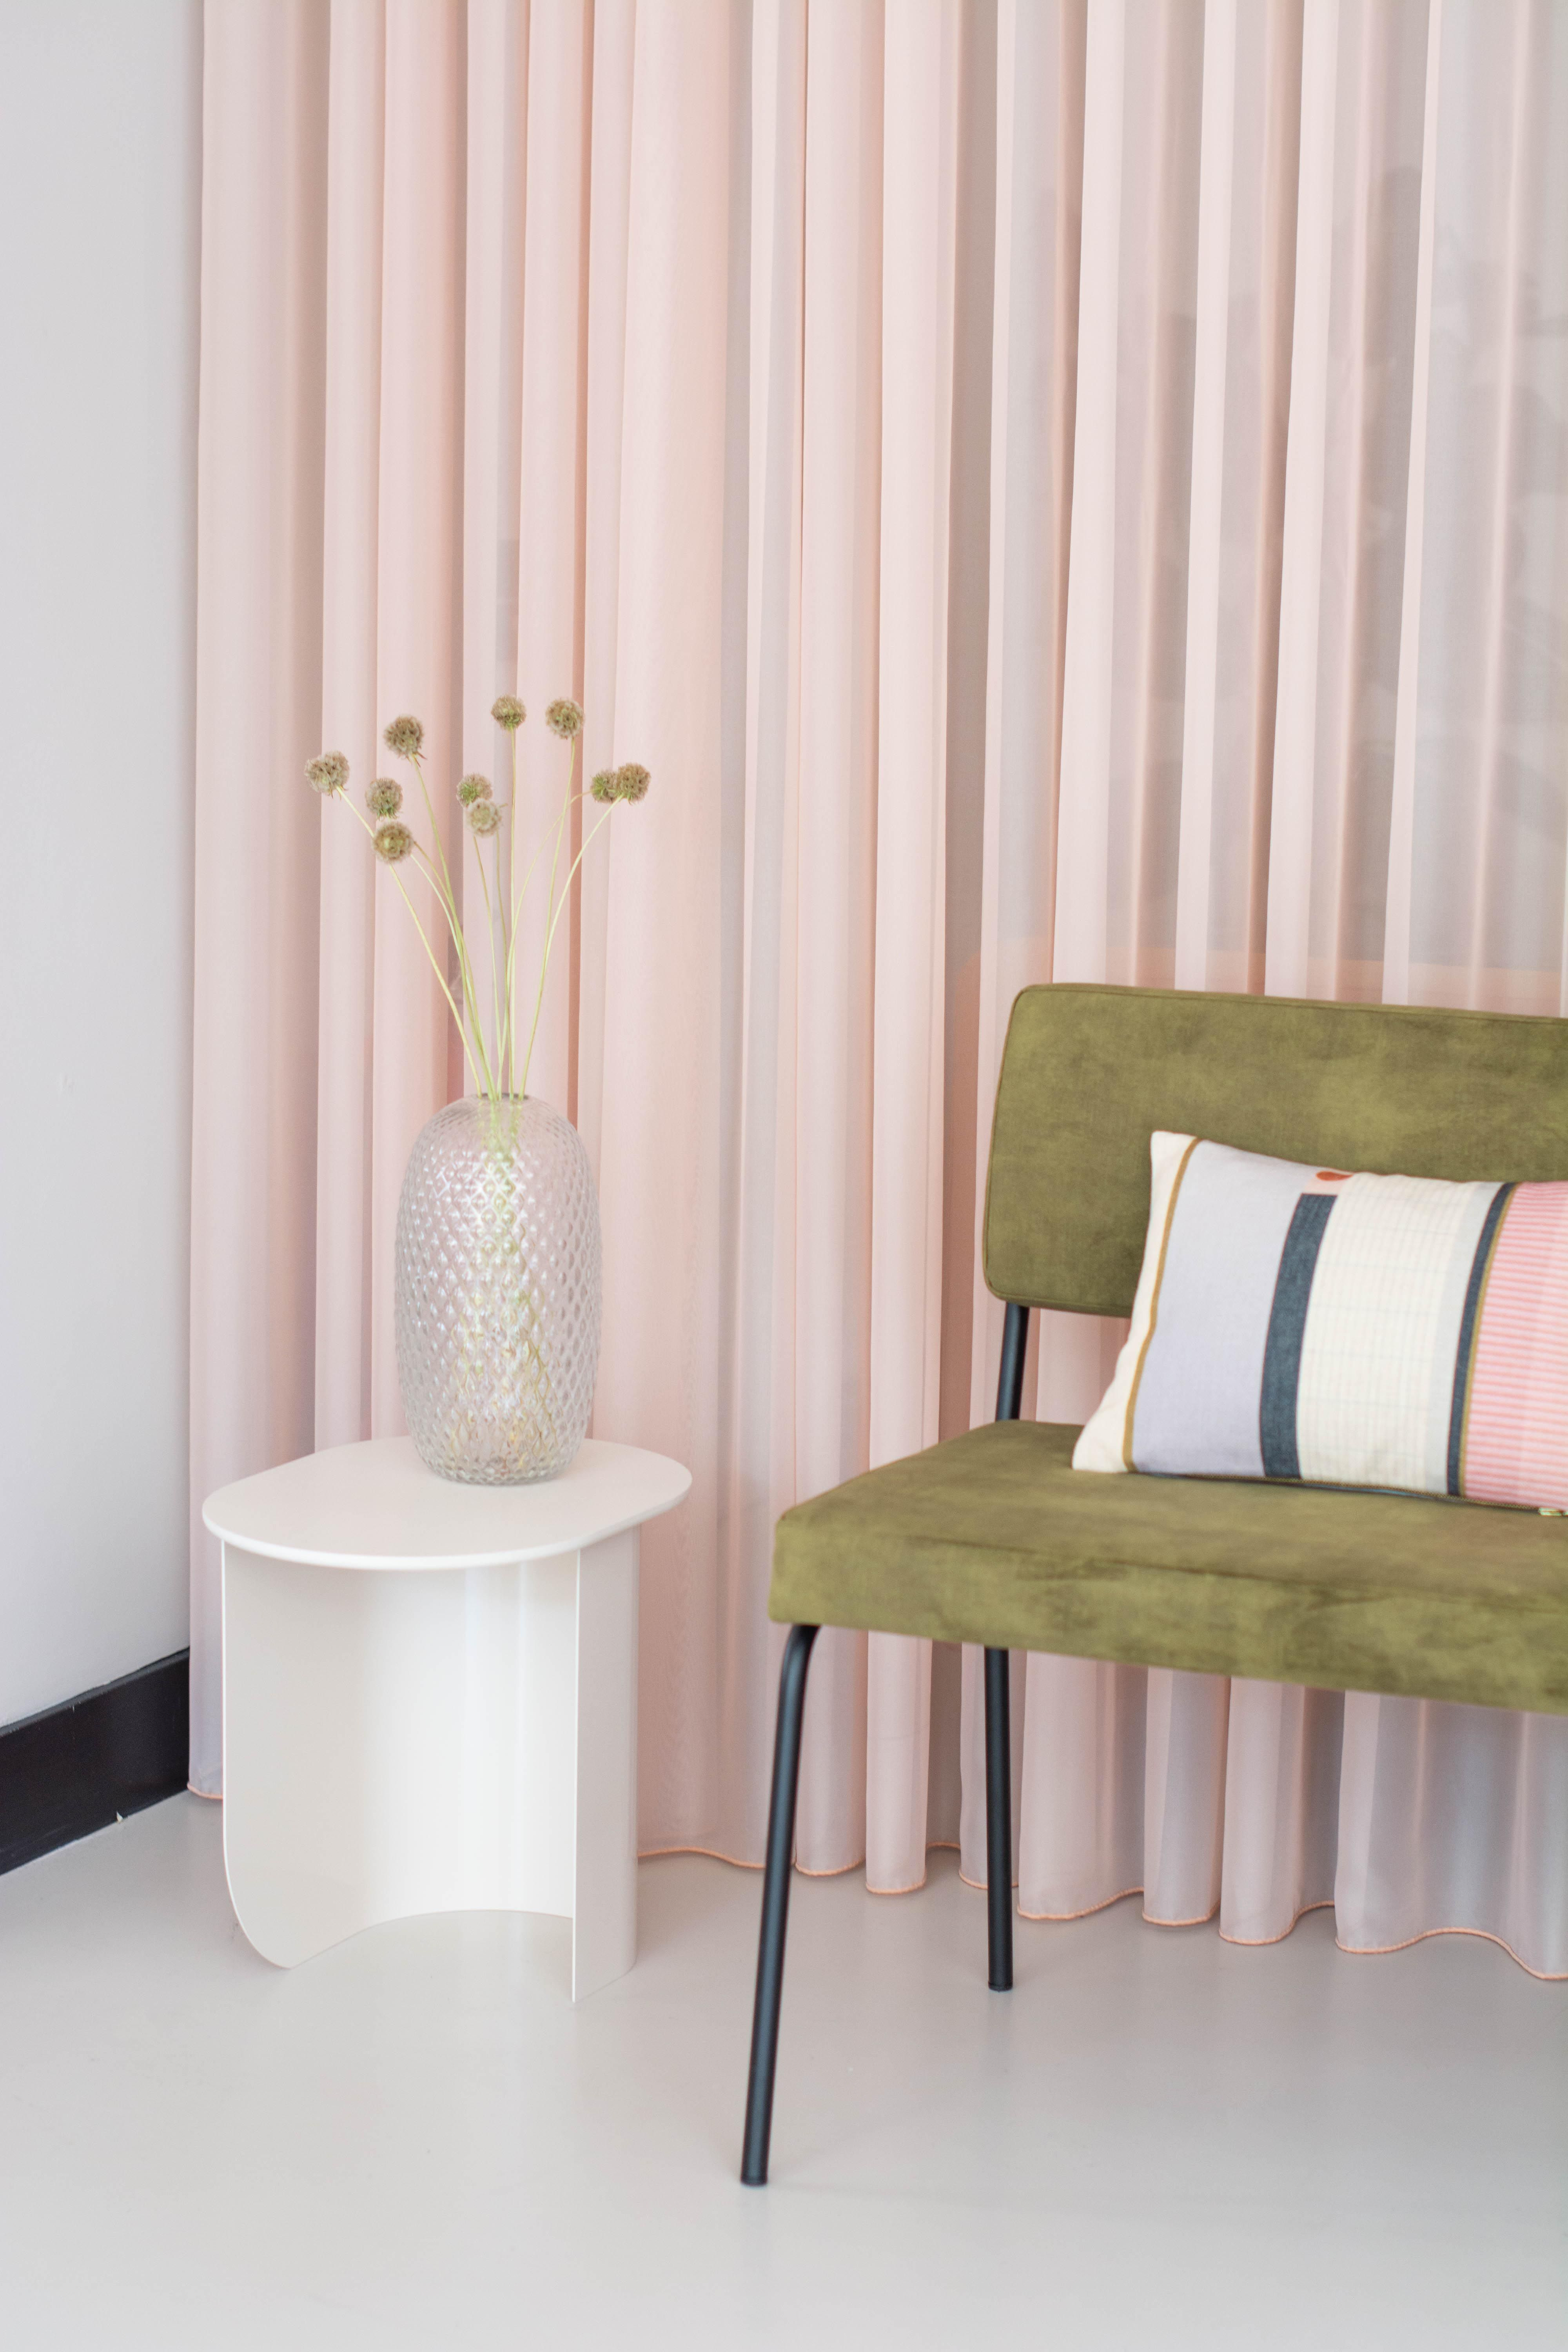 Meet Festamsterdam A Brand Created To Challenge The Traditional Furniture Business By Producing High End A Furniture Design Affordable Design Cushion Design